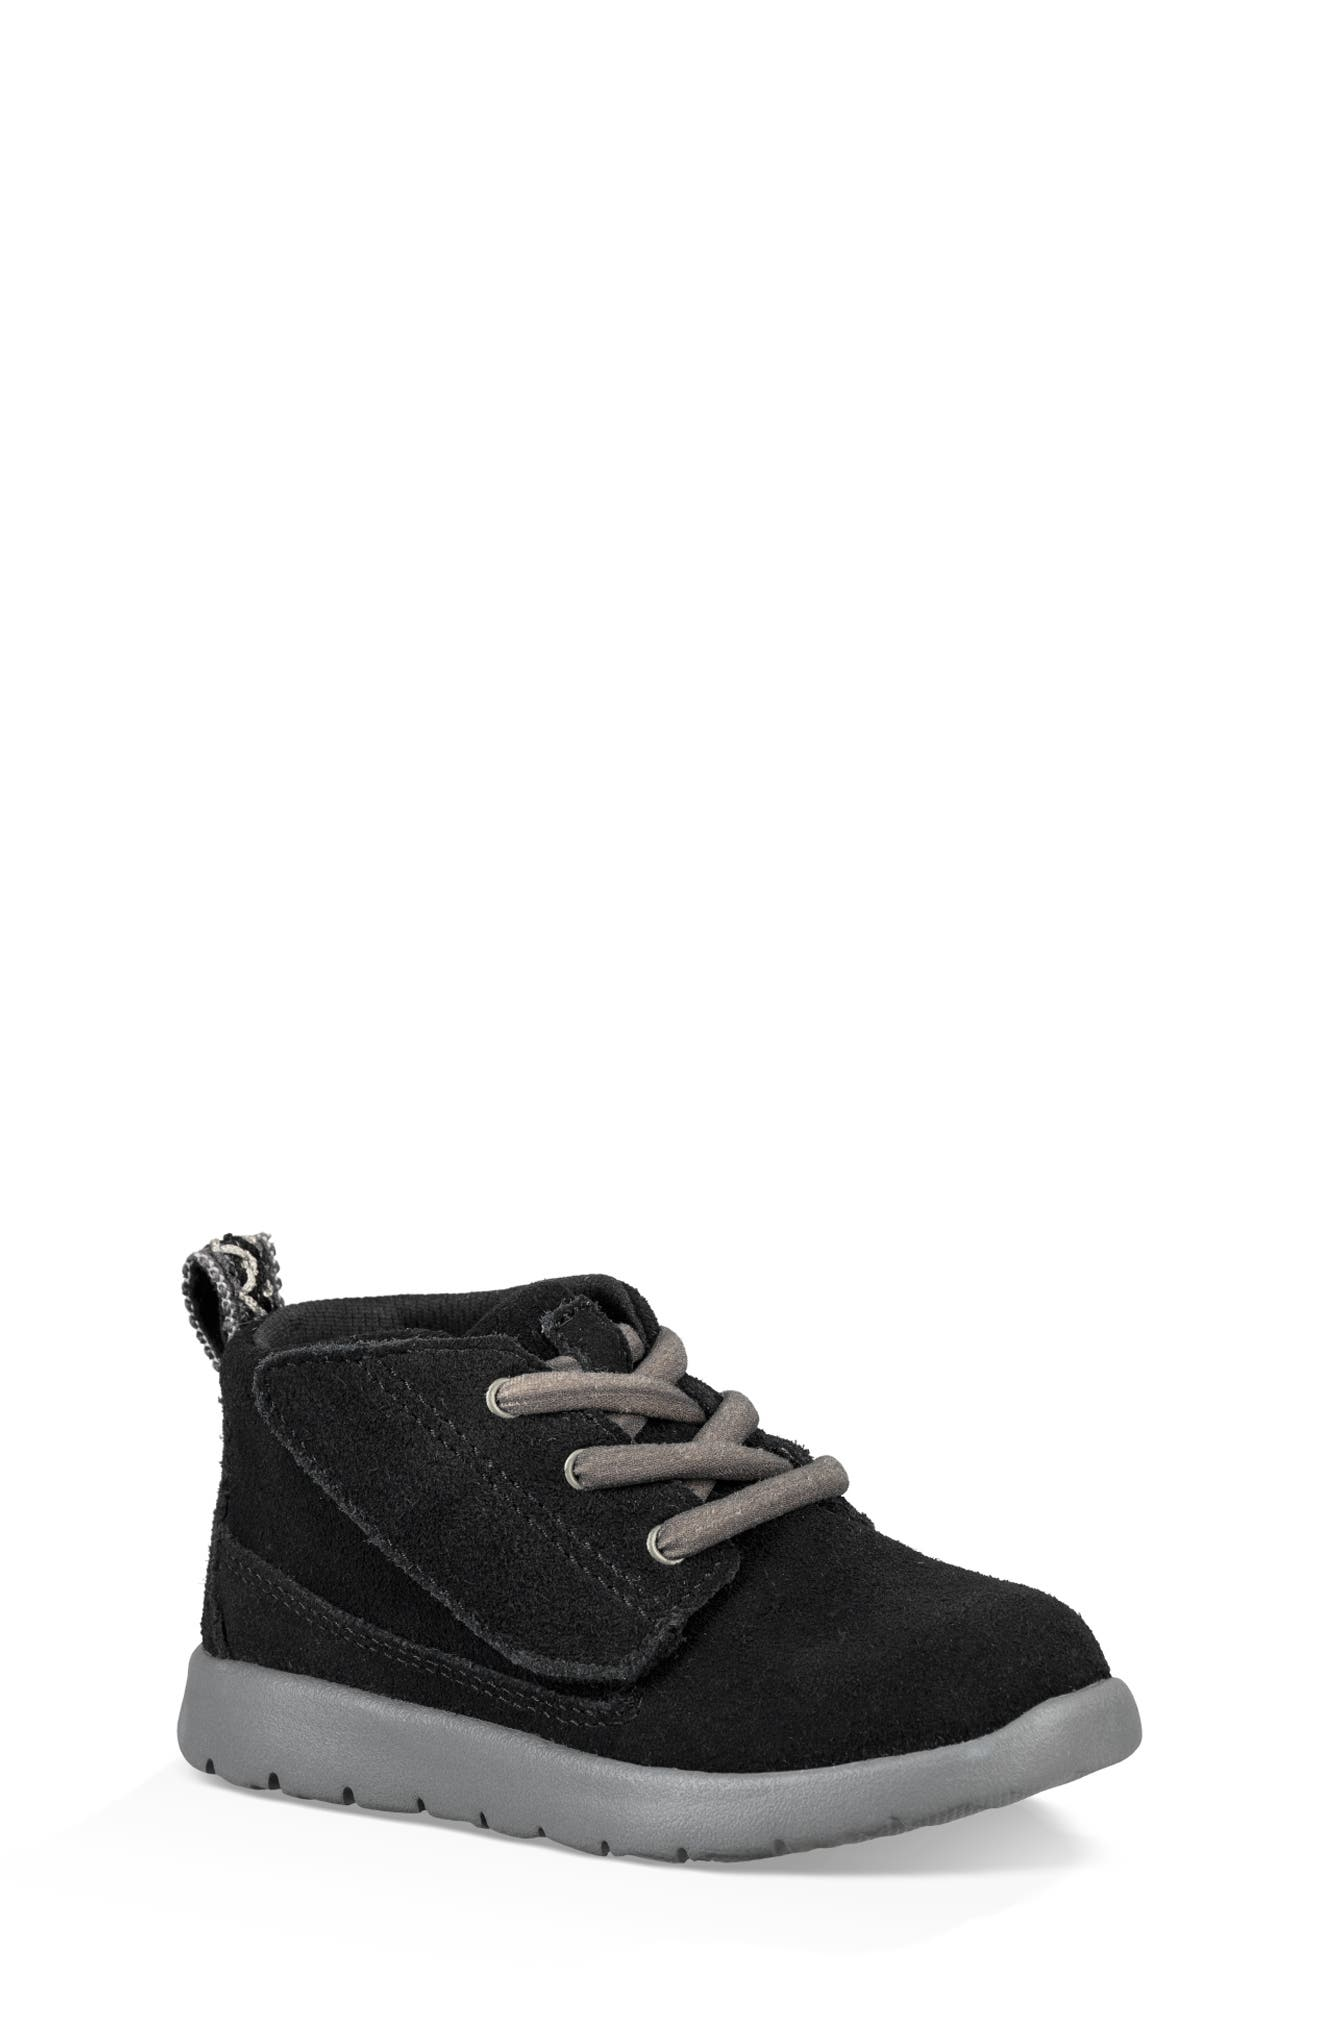 UGG<SUP>®</SUP>, Canoe Washable Chukka Sneaker, Main thumbnail 1, color, BLACK